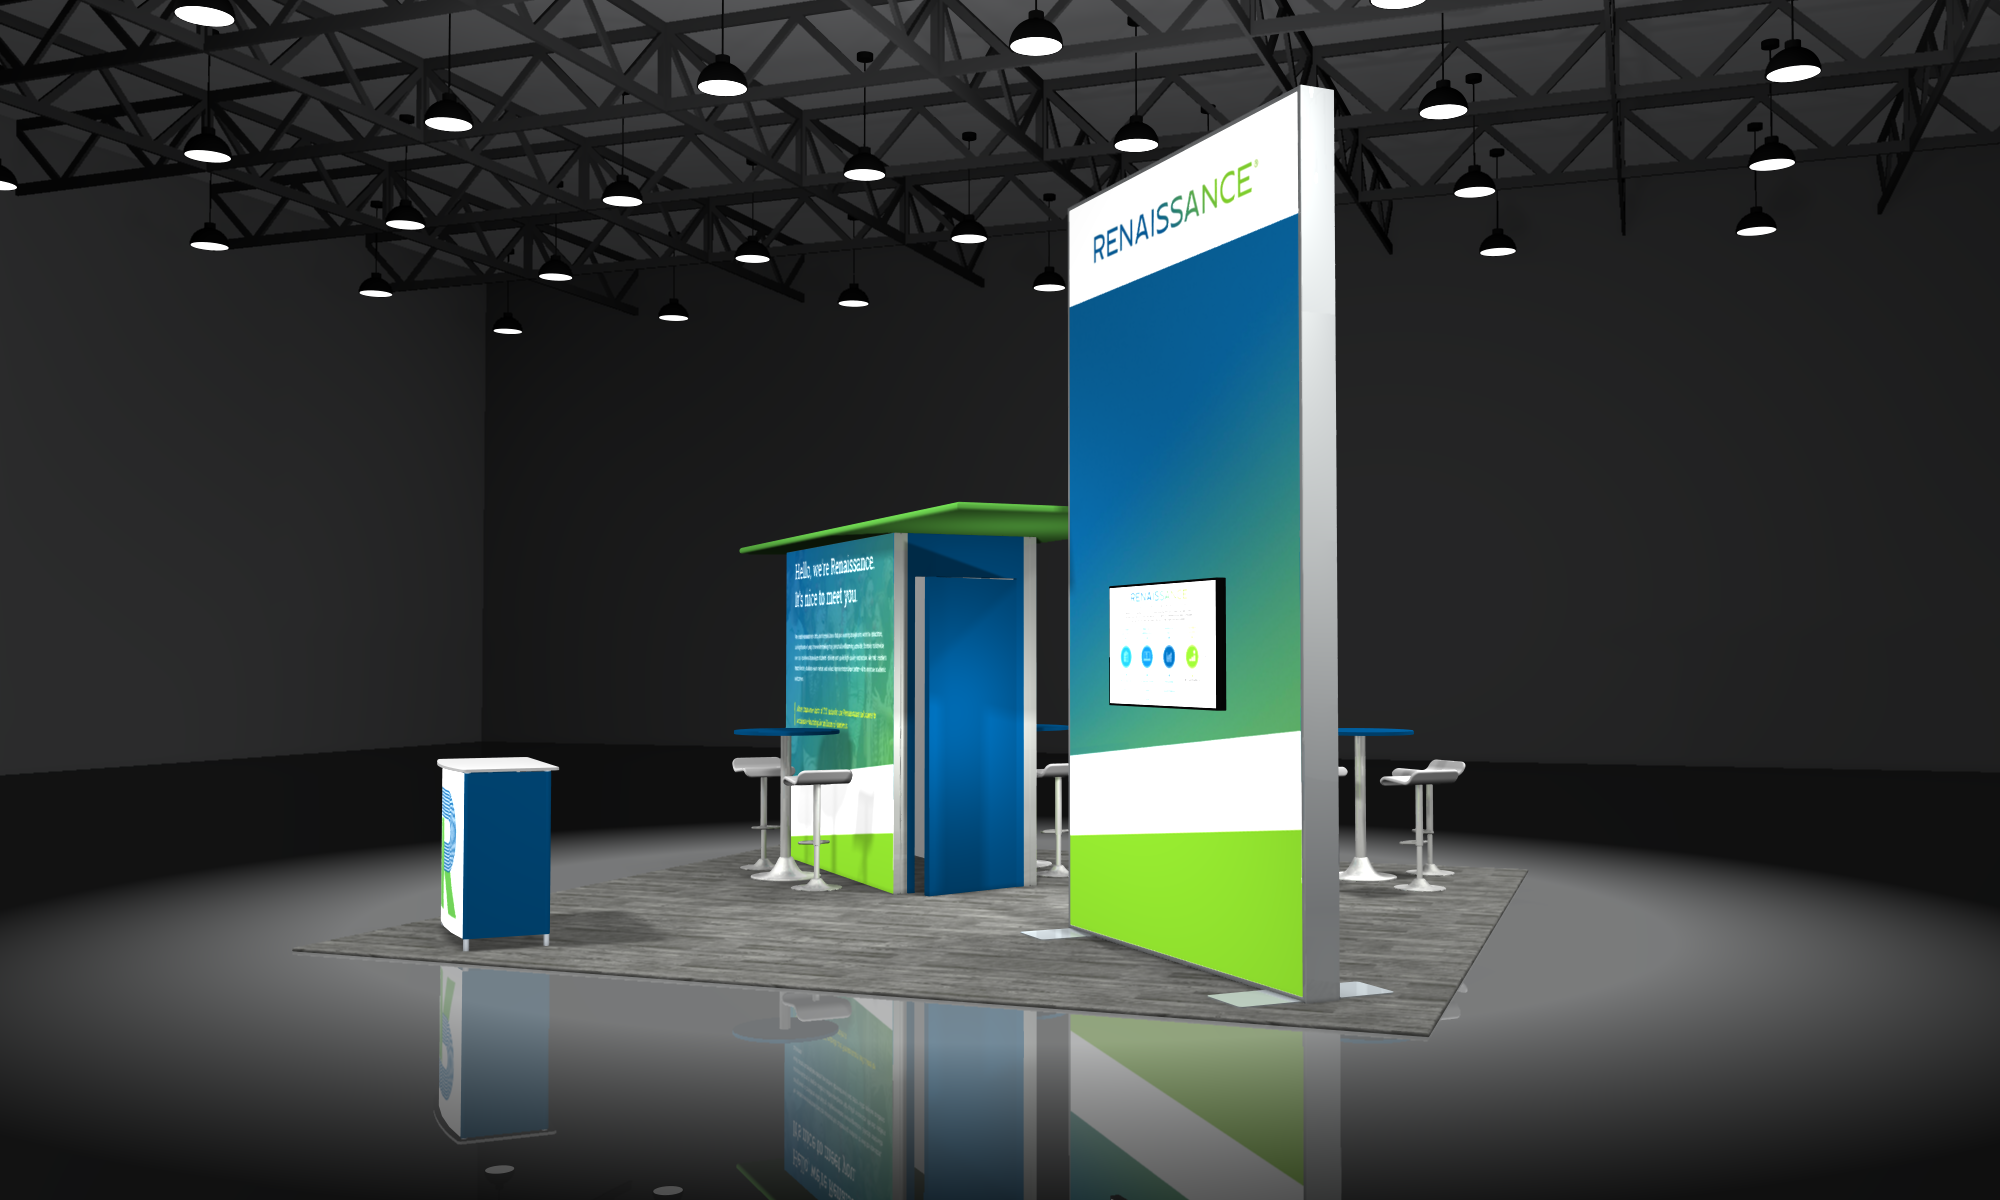 20x20 tool-less free standing trade show display